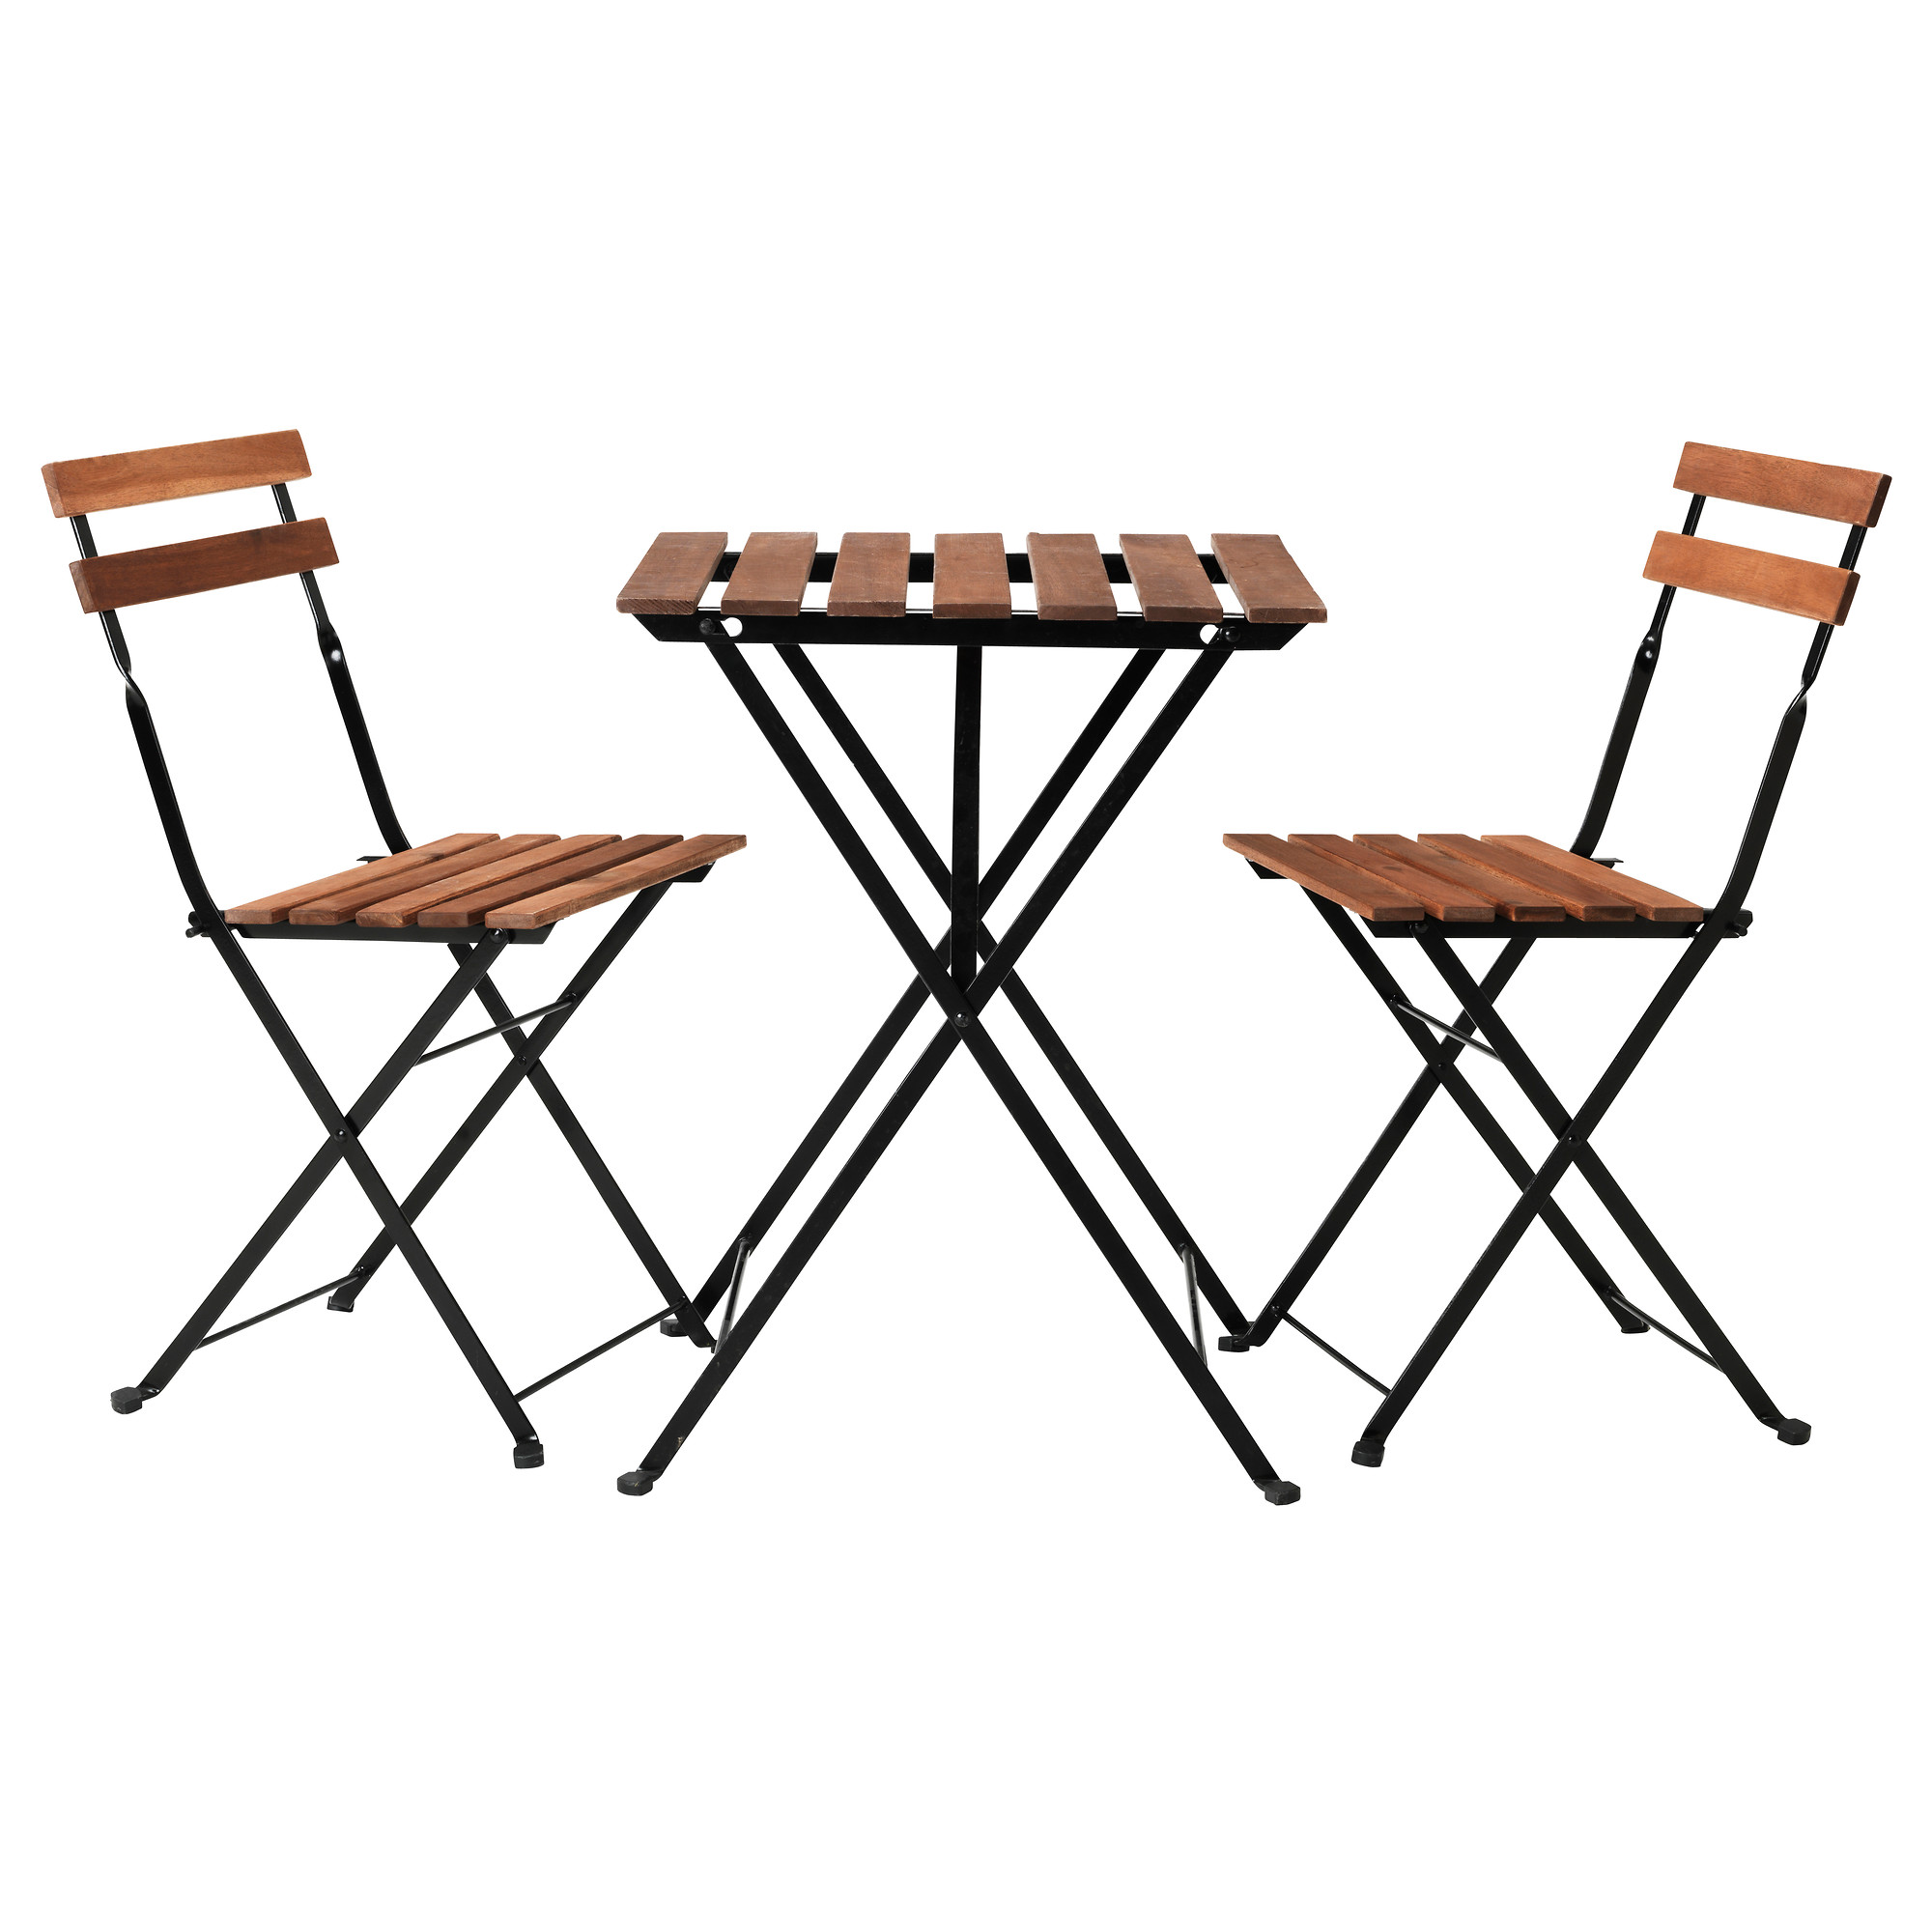 Outdoor cafe chairs - T Rn Table 2 Chairs Outdoor Acacia Black